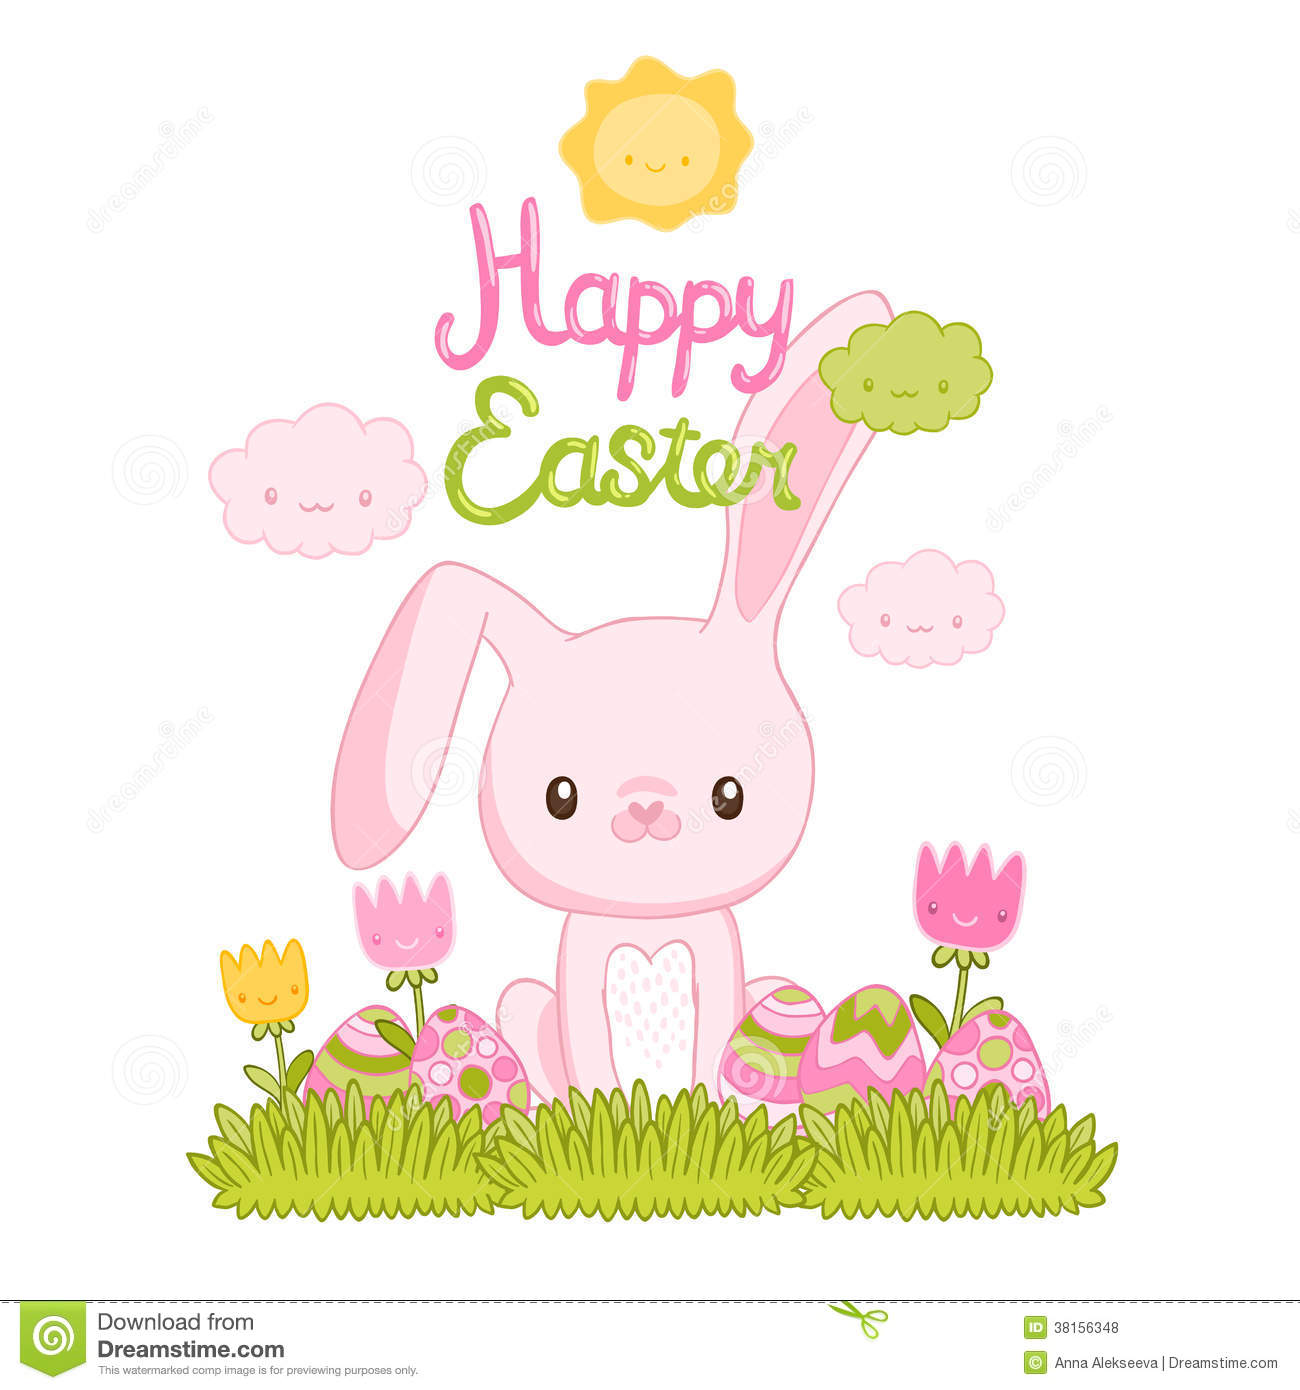 Happy Easter Cartoon Cute Bunny And Eggs Royalty Free ...